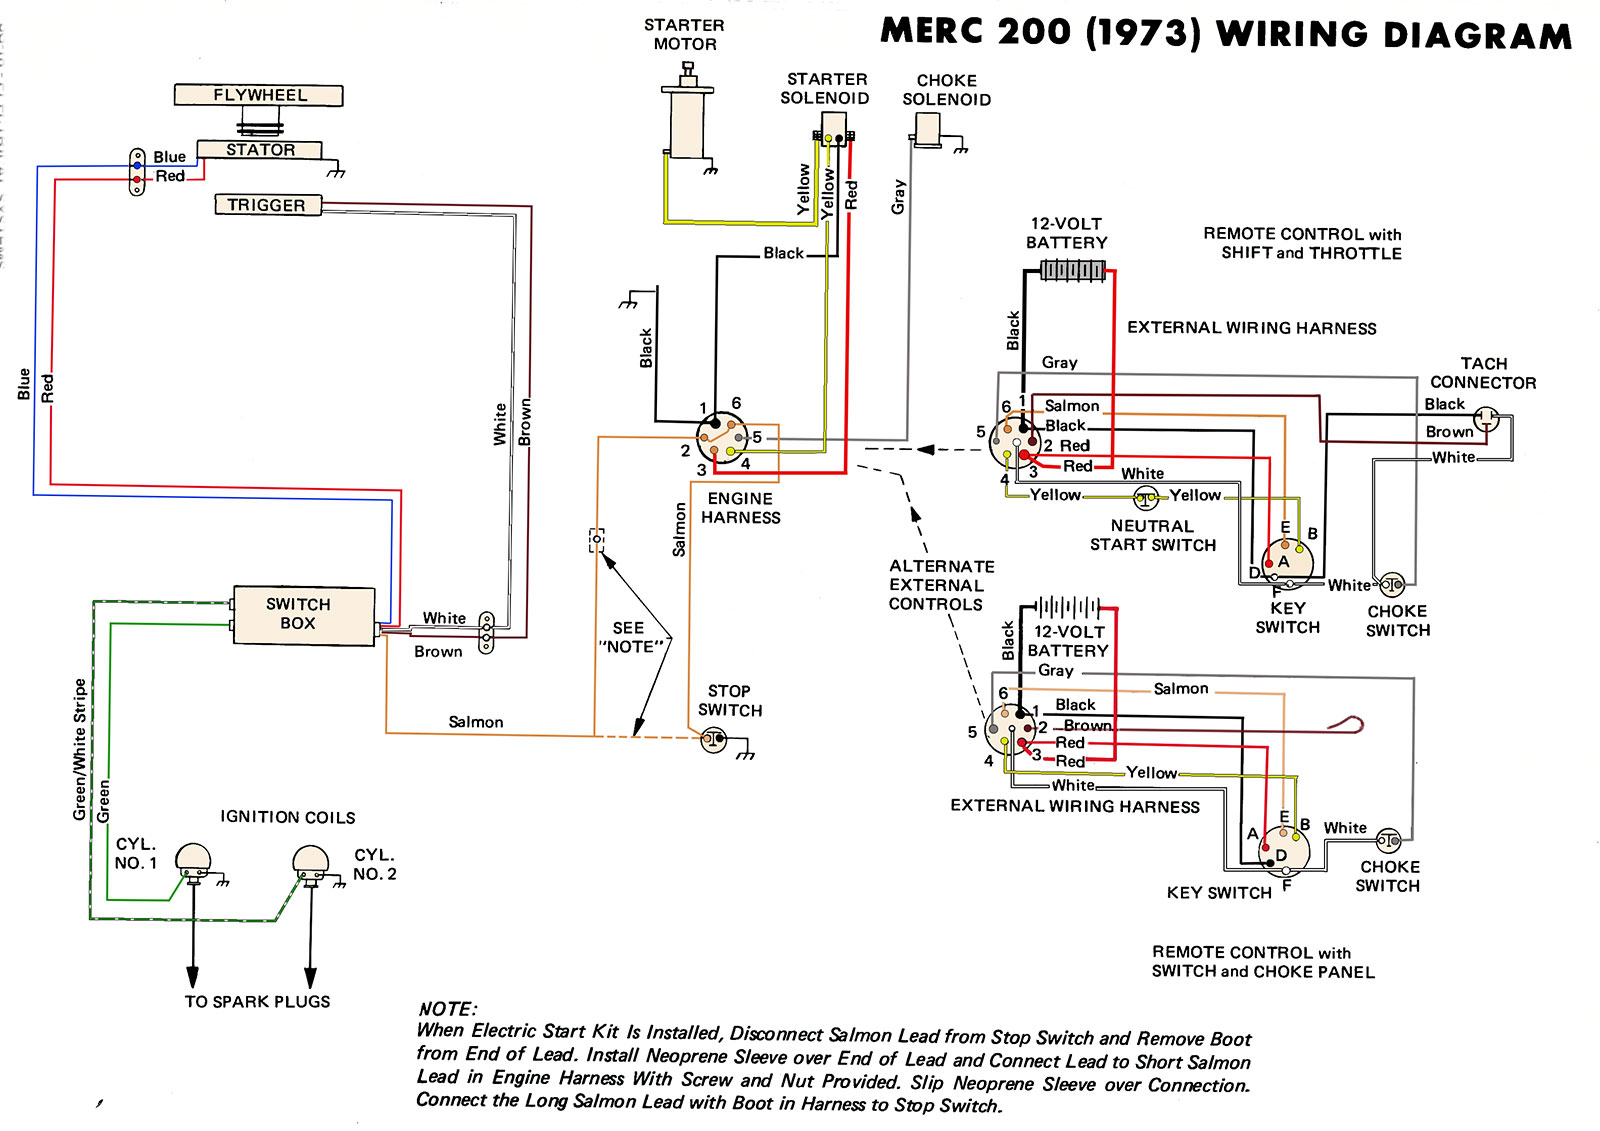 hight resolution of wiring diagram for a 1971 mercury 115 wiring diagram used mercury outboard cooling system diagram in addition image of 1978